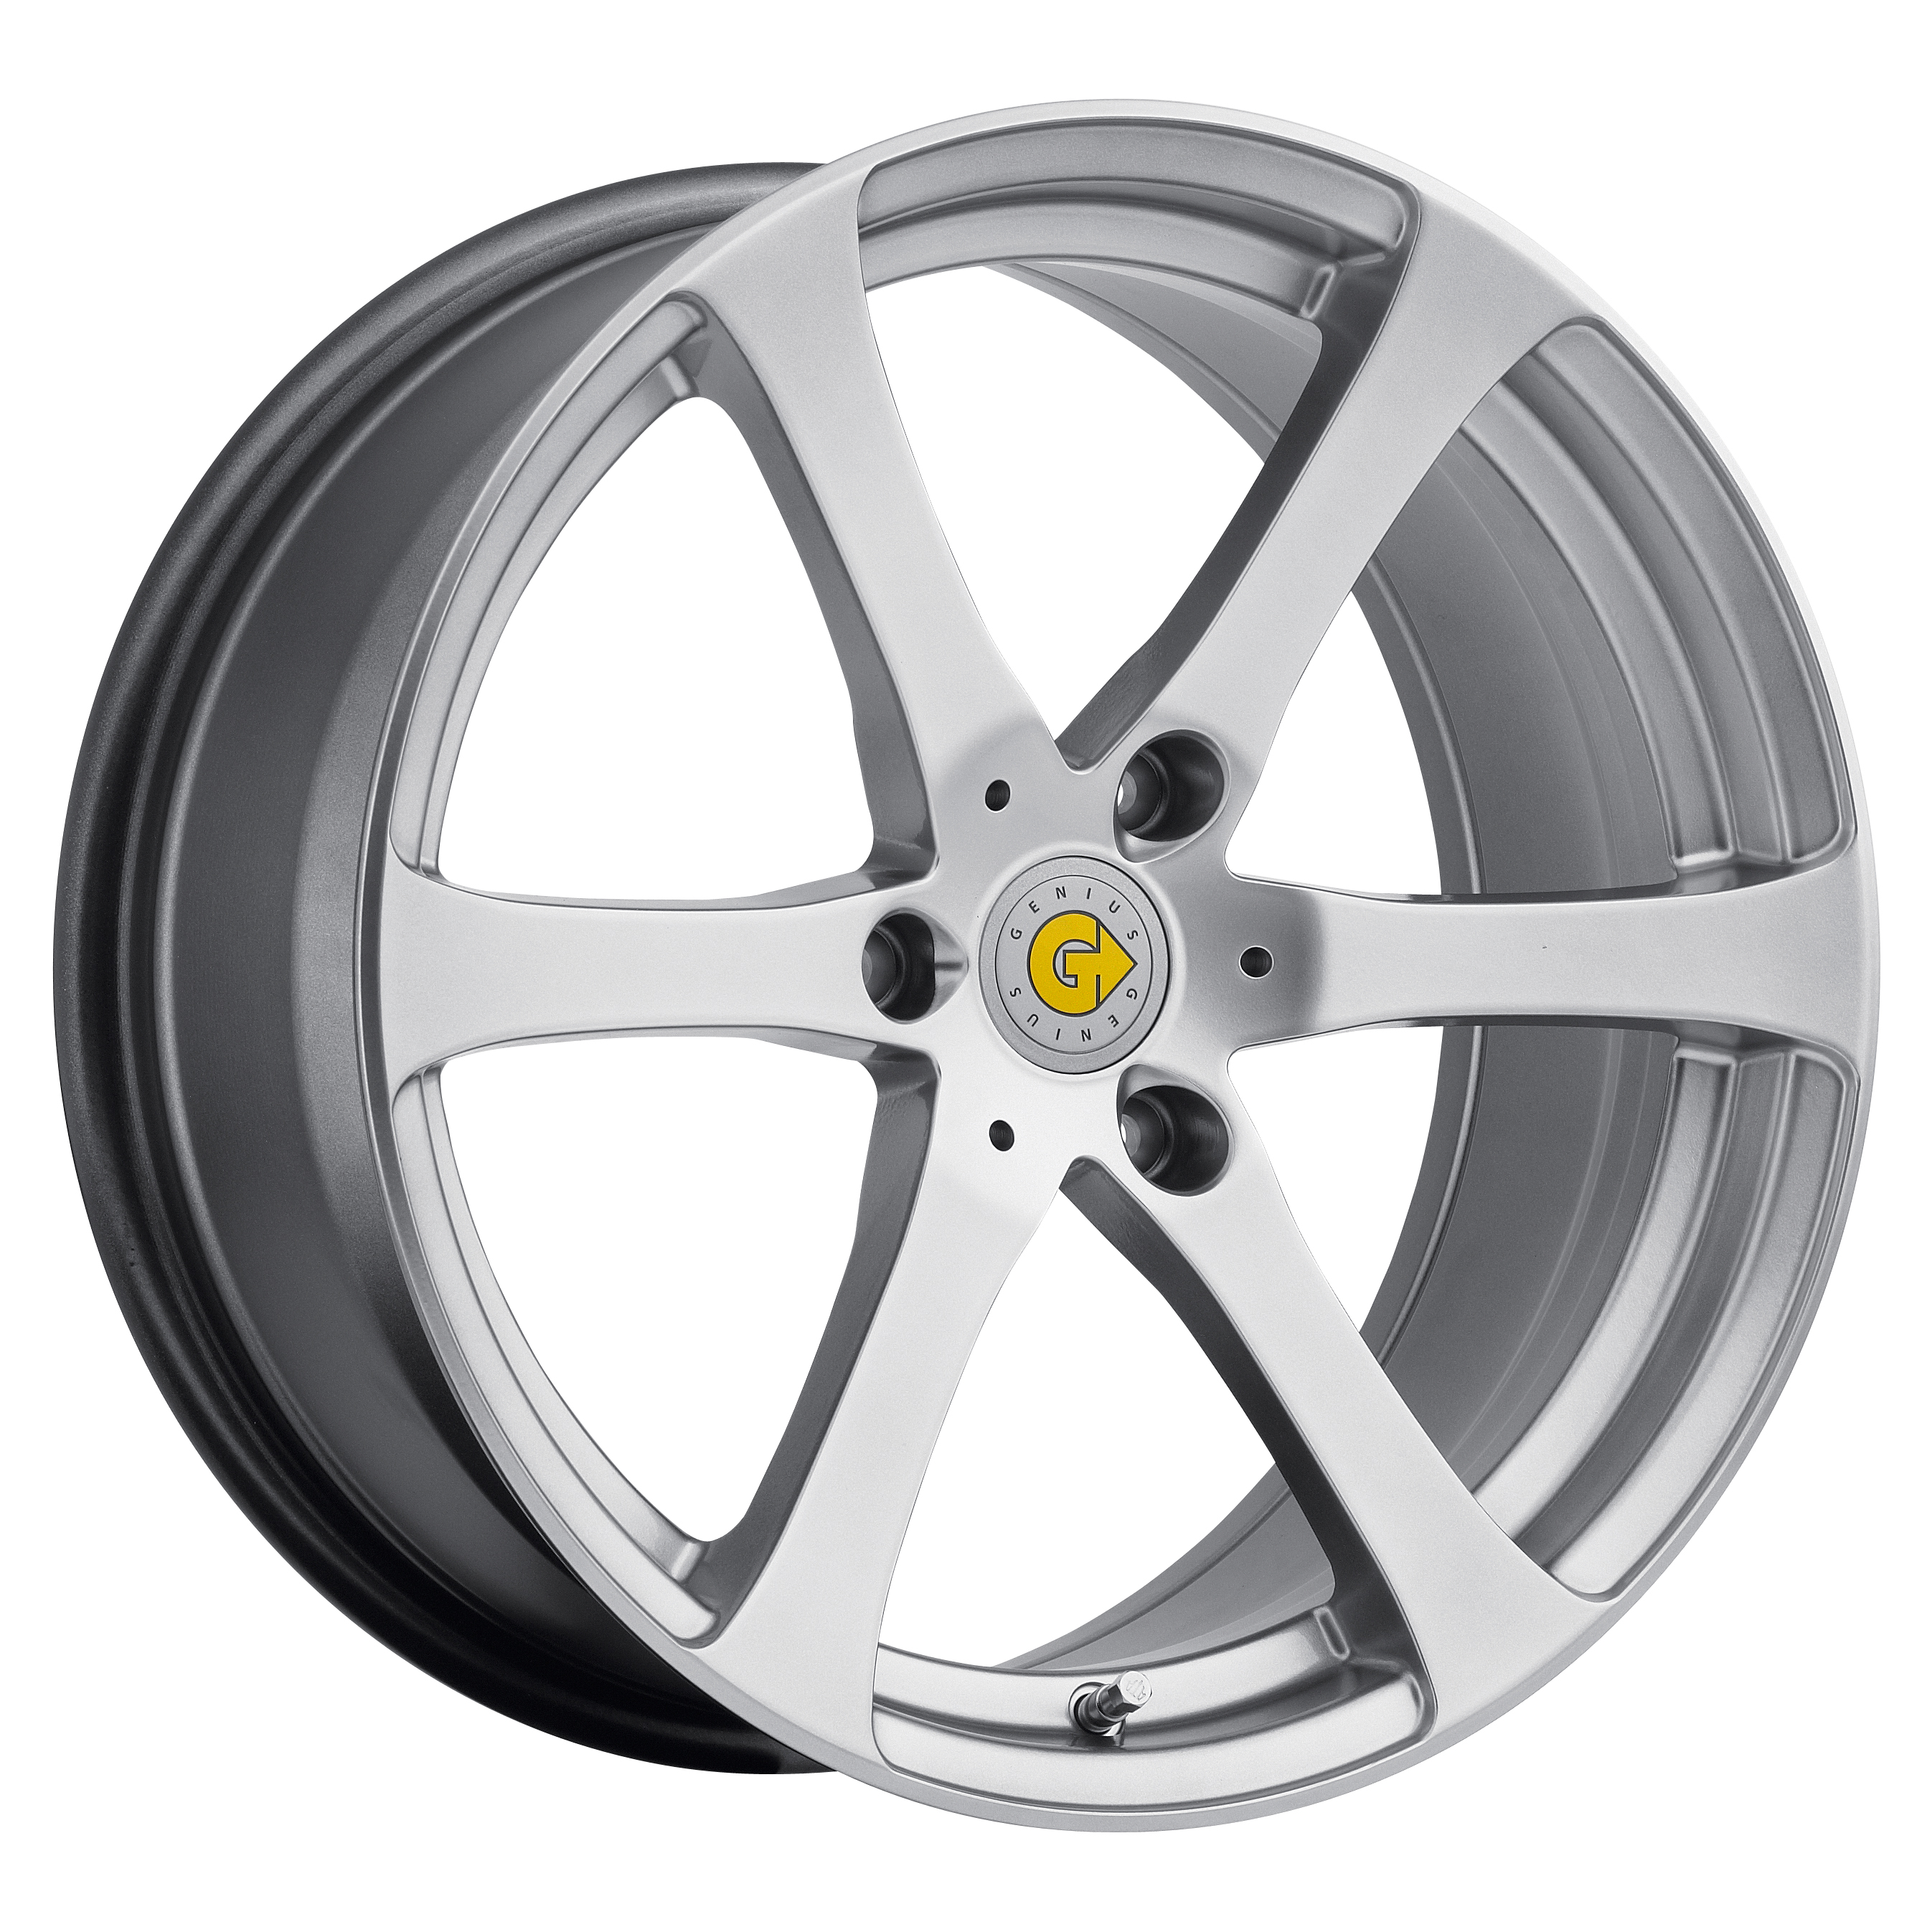 smart wheels genius newton wheel lug rims custom silver dimensions models customizing adds rear